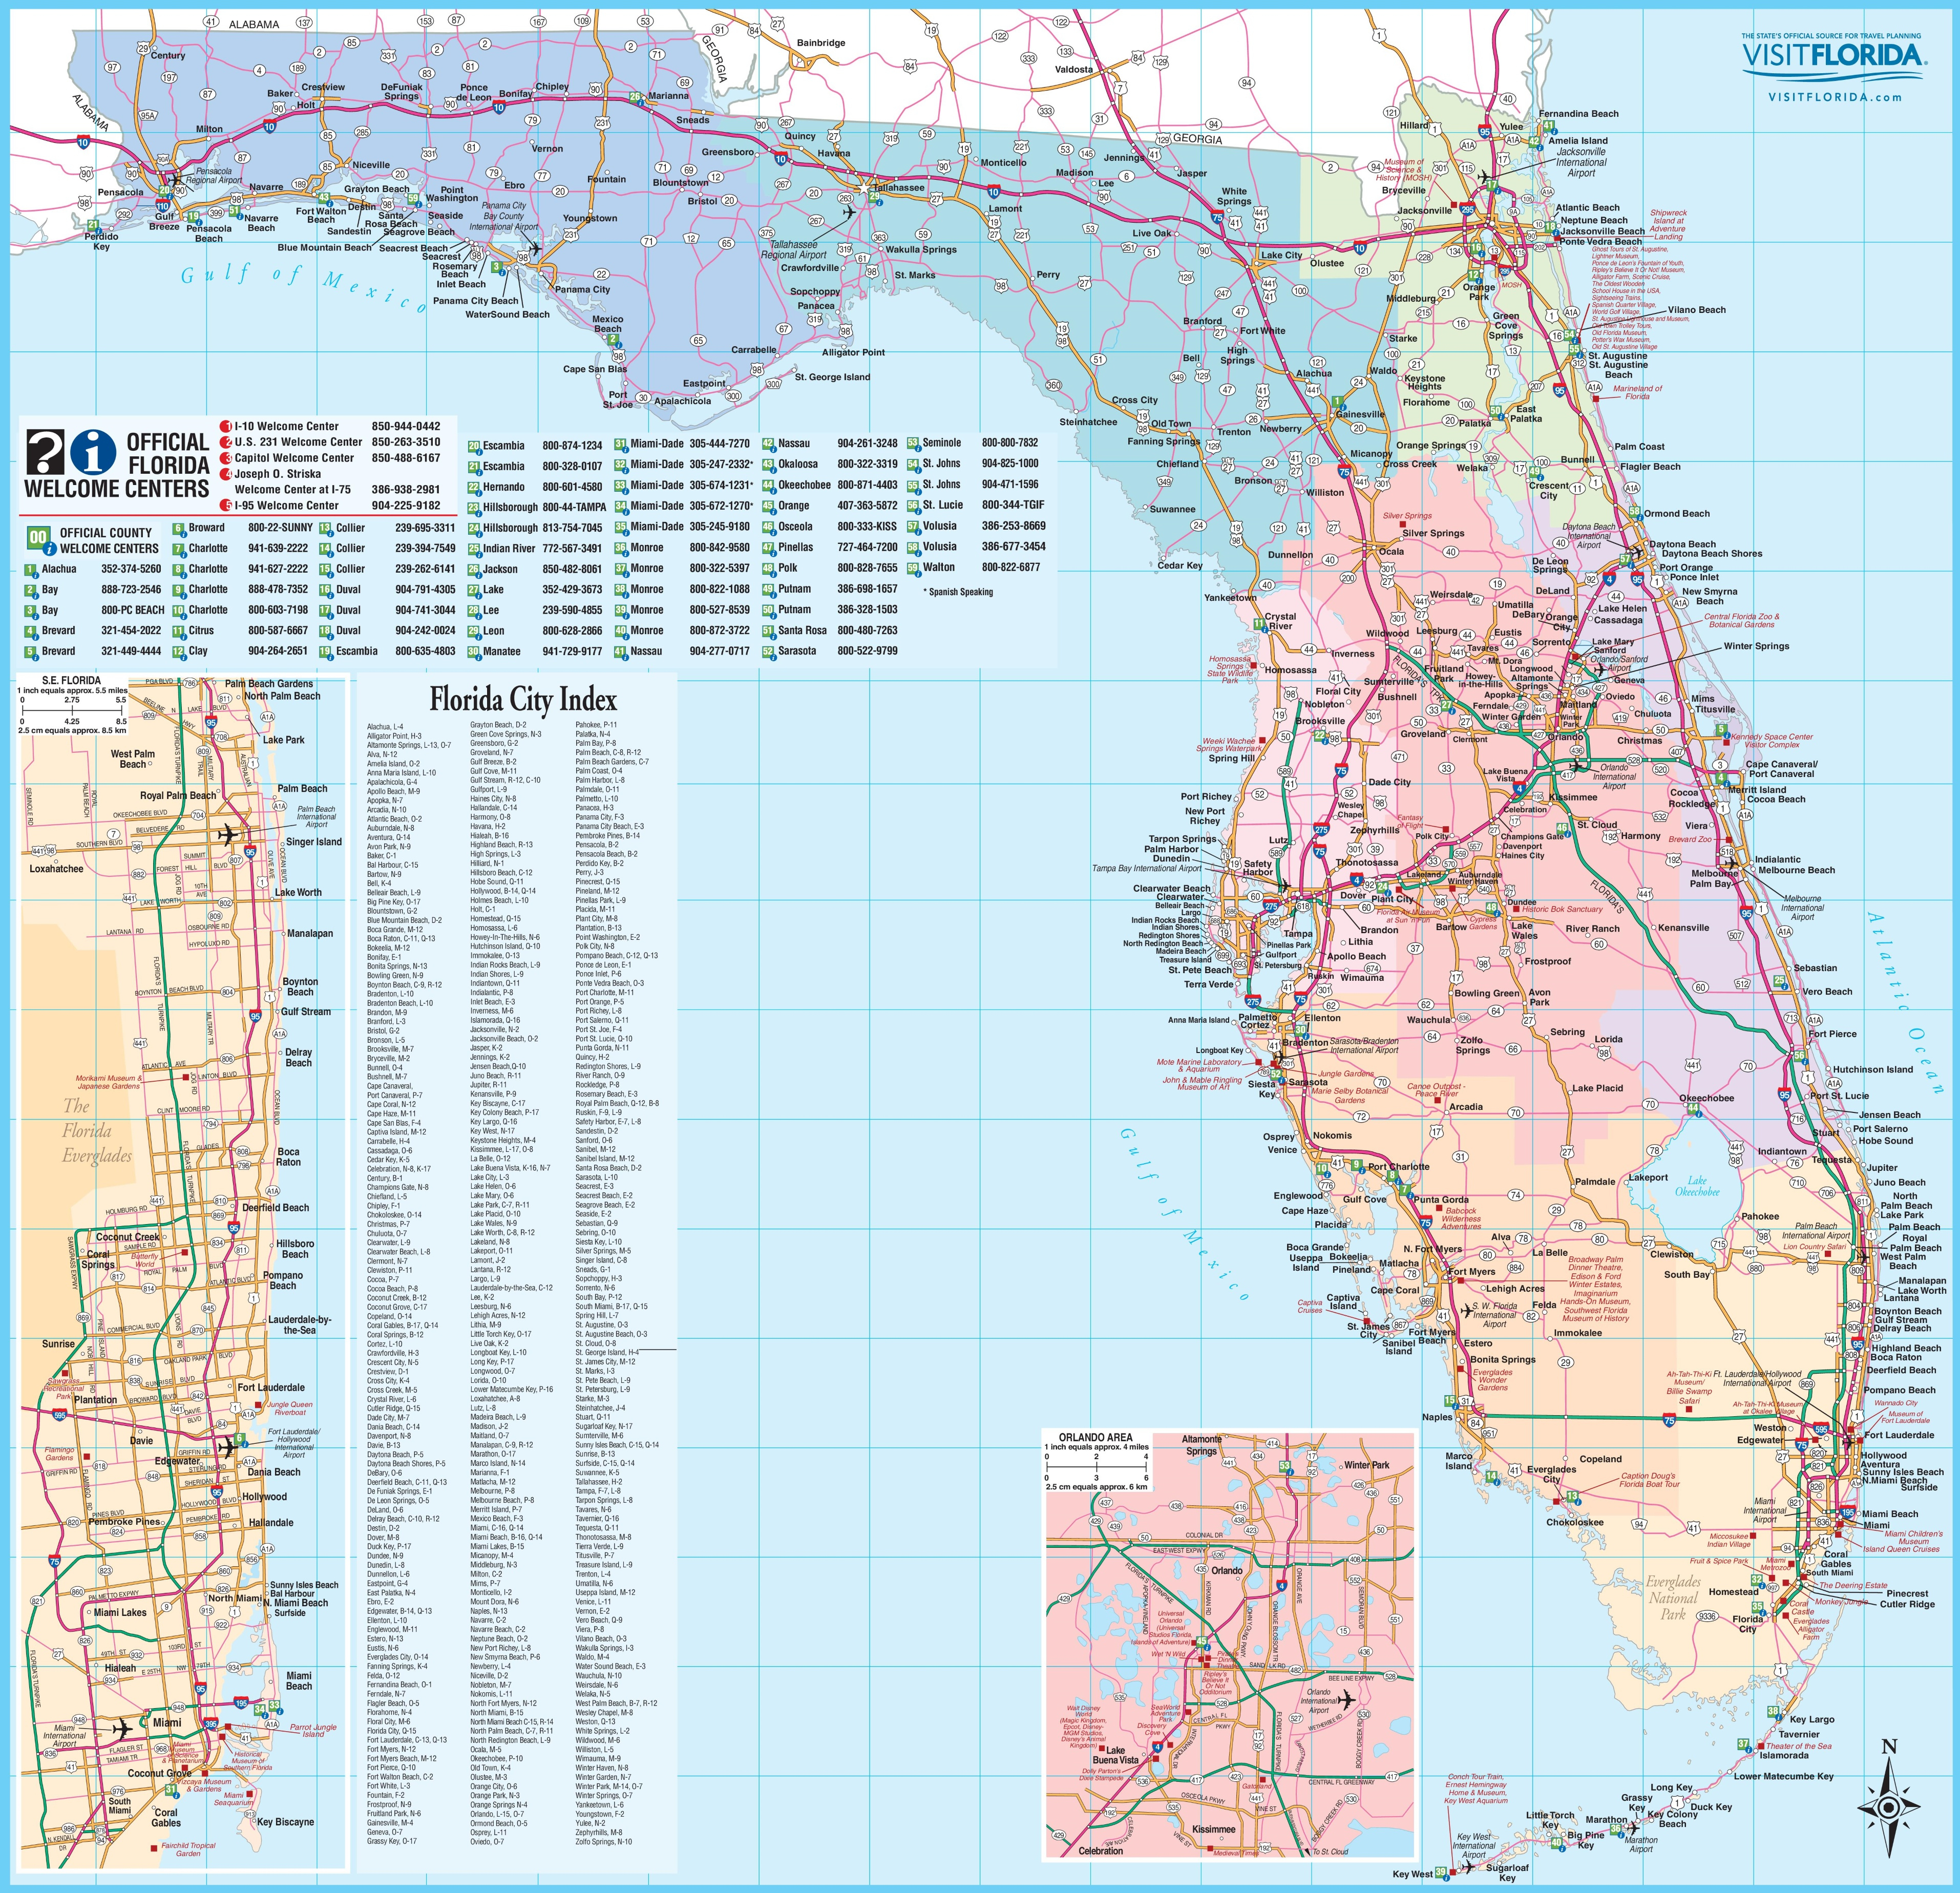 Map Of Florida - On-Scenic-Routes - I Want A Map Of Florida